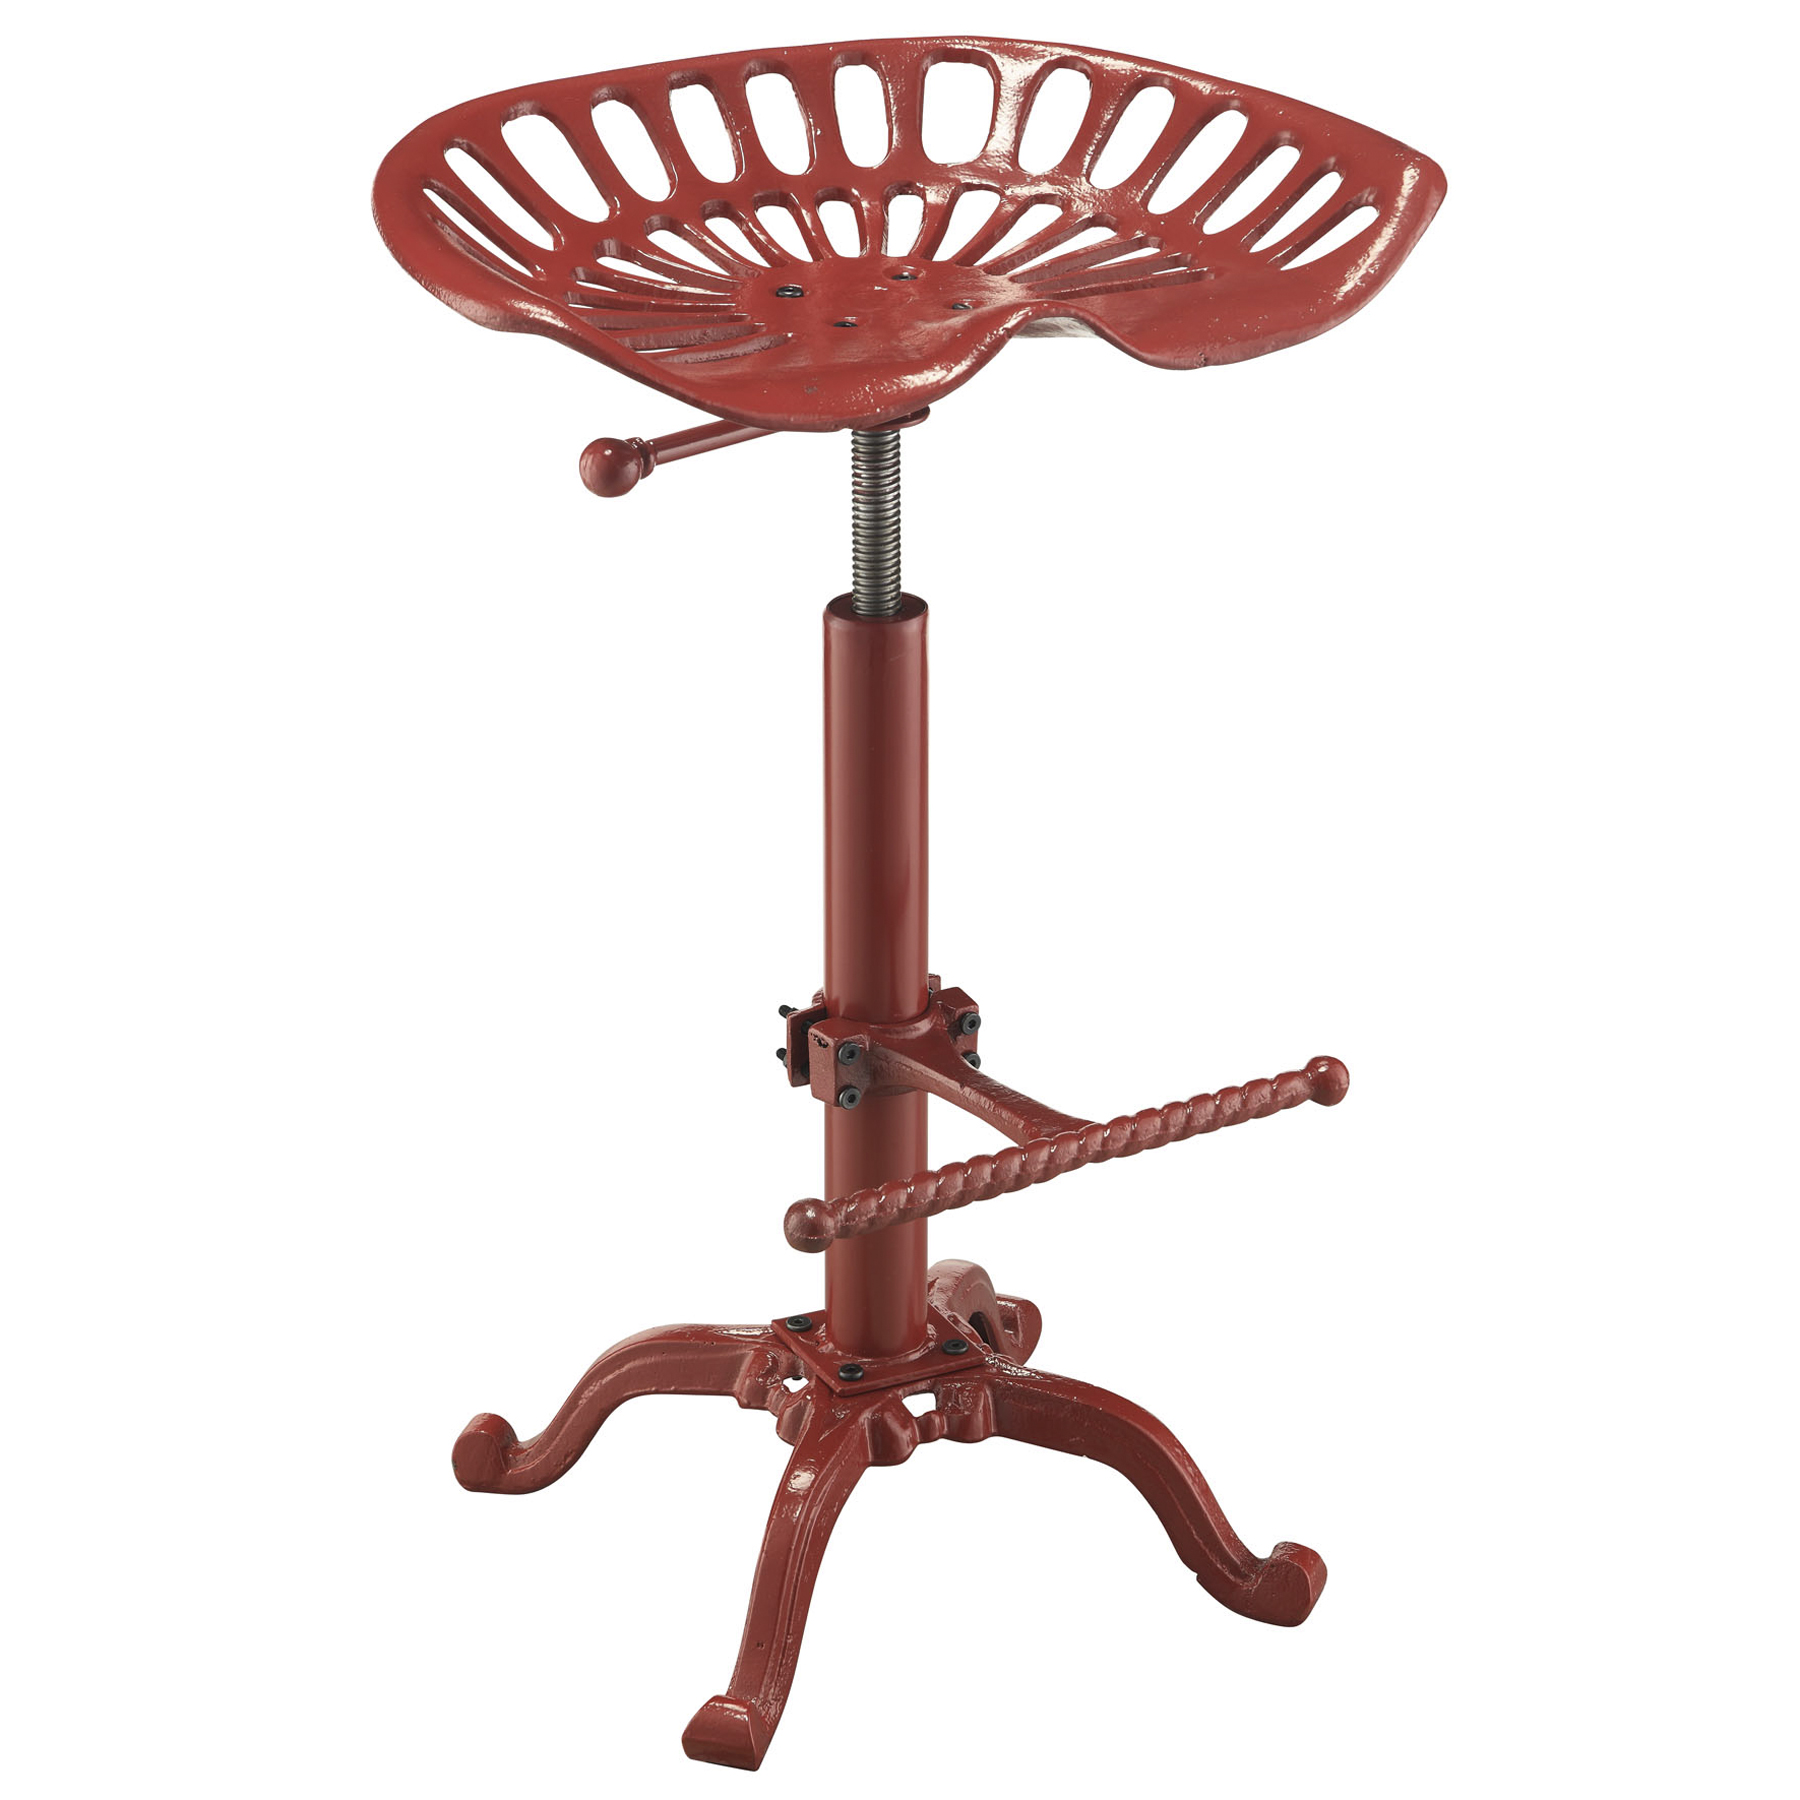 Hunter Adjustable Tractor Seat Stool, Red